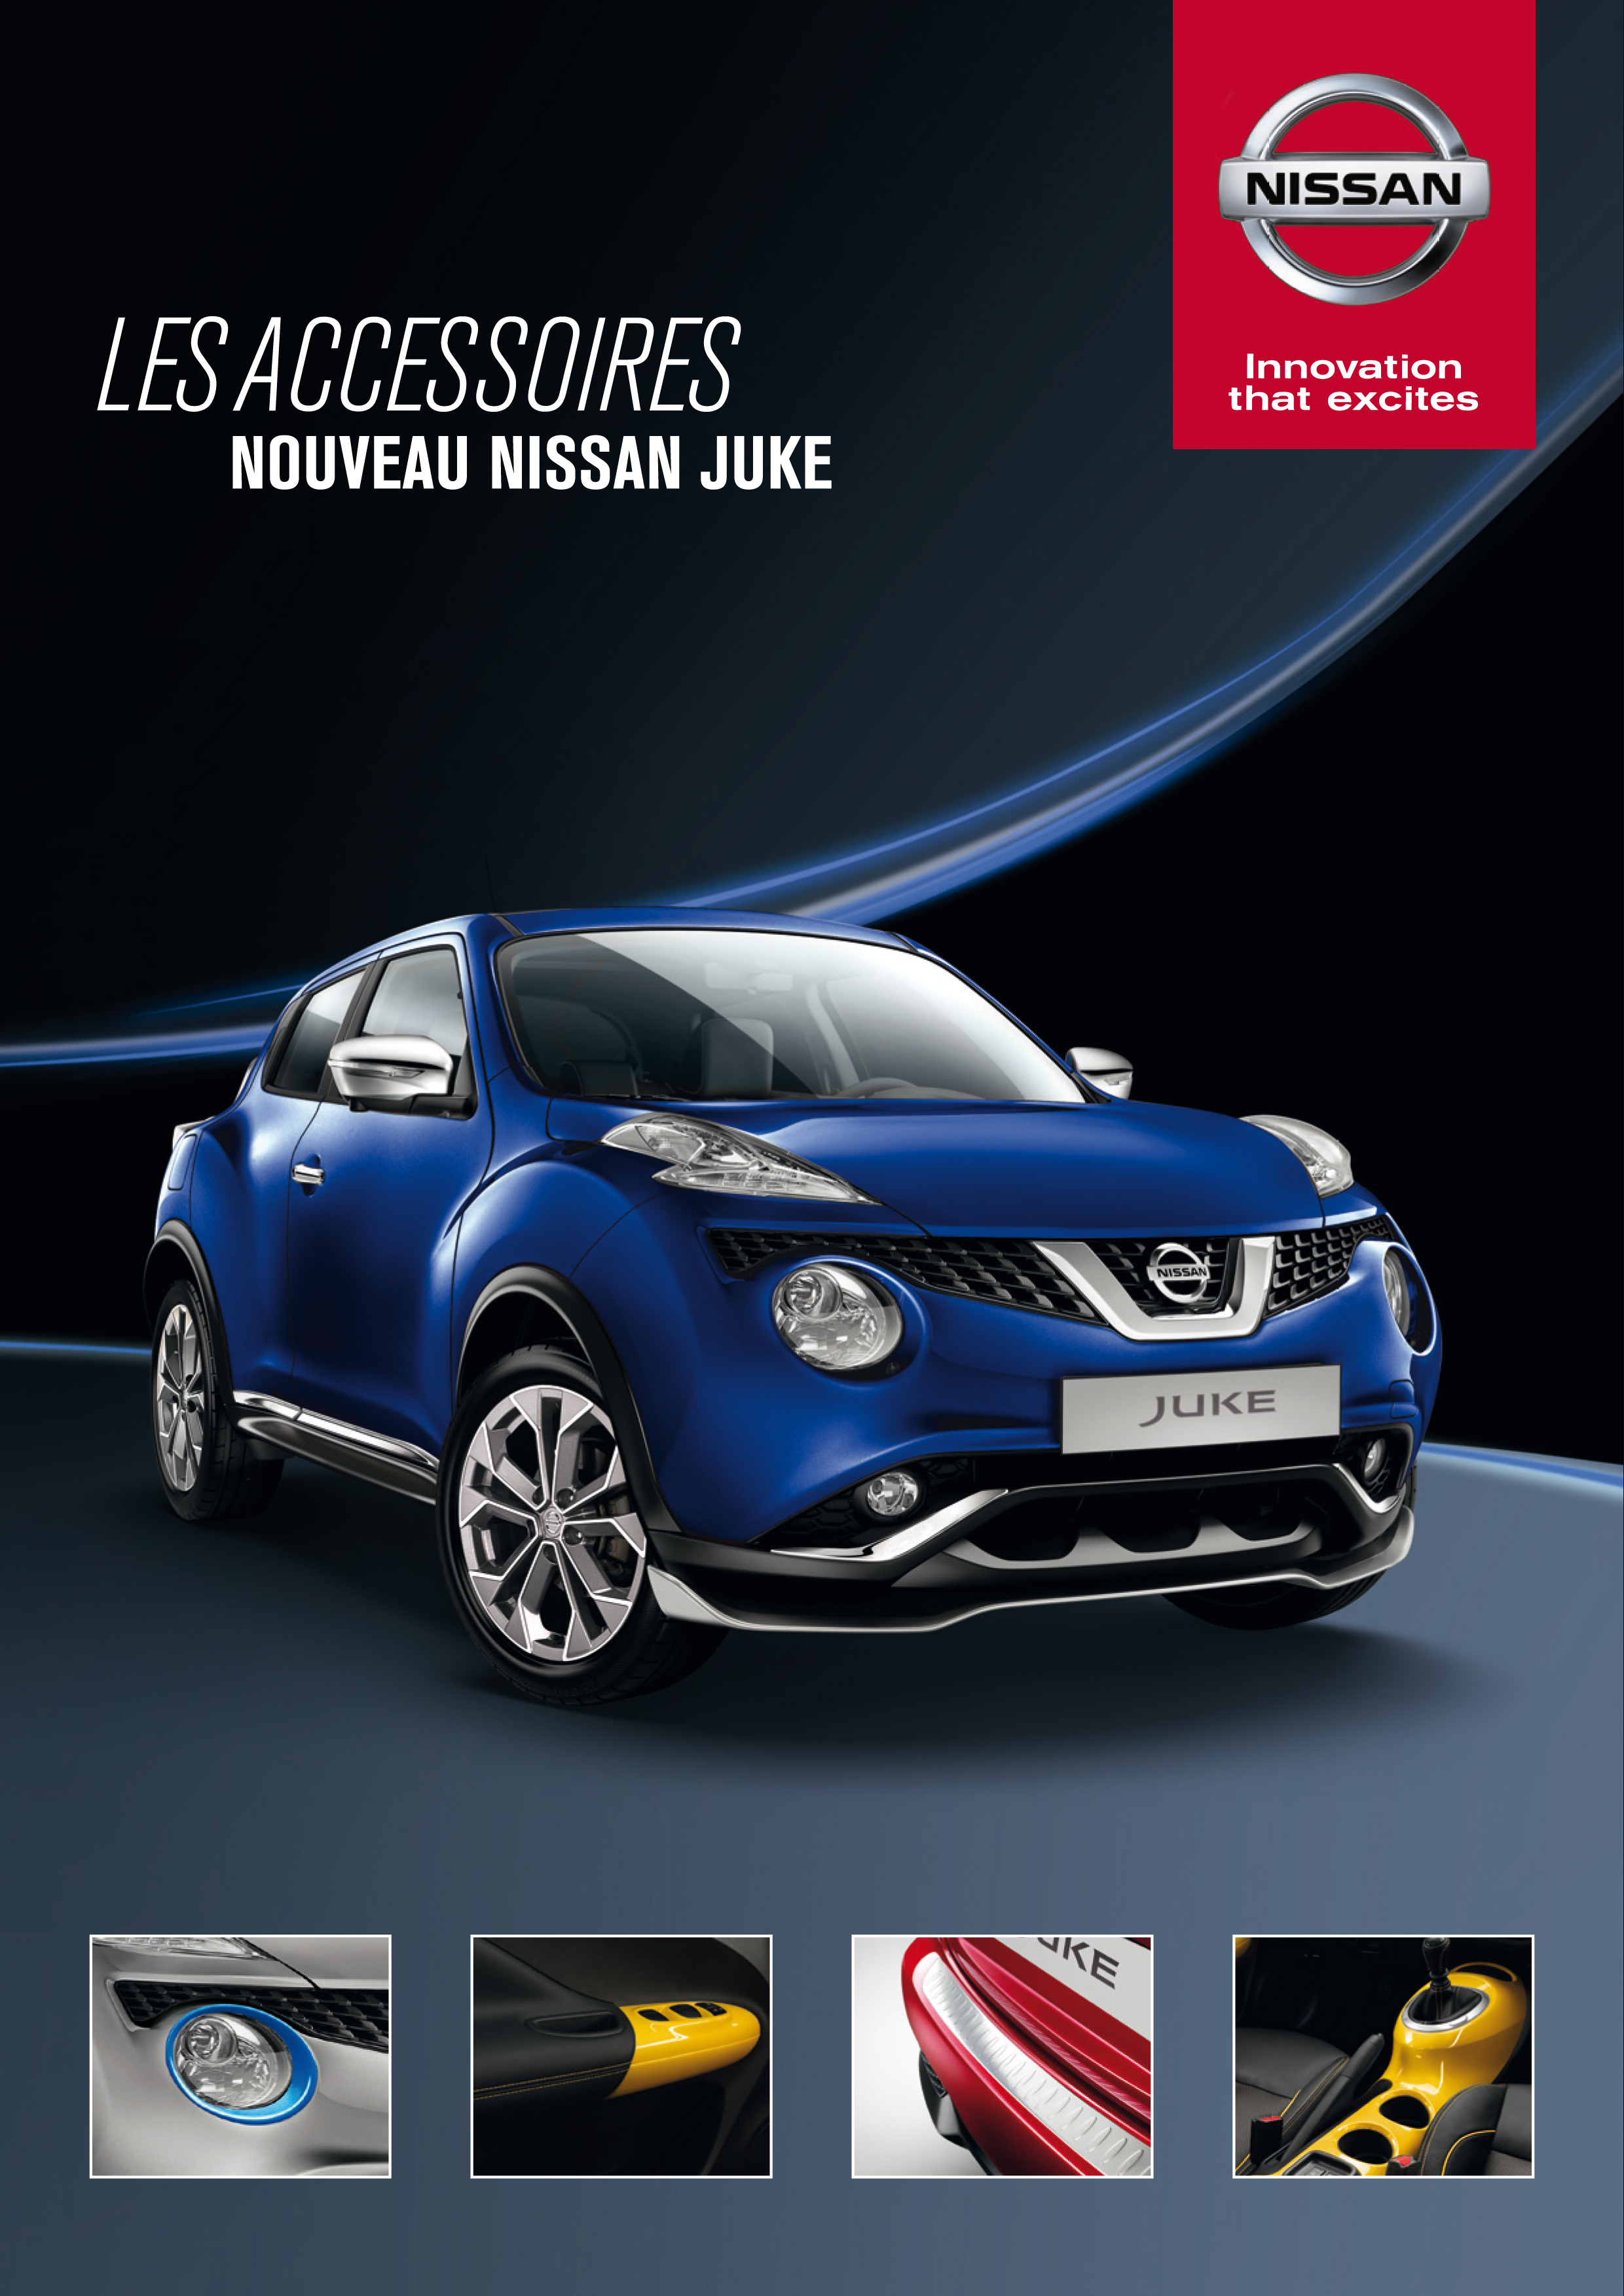 accessoires nouveau nissan juke nissan chartres fontenay sur eure. Black Bedroom Furniture Sets. Home Design Ideas